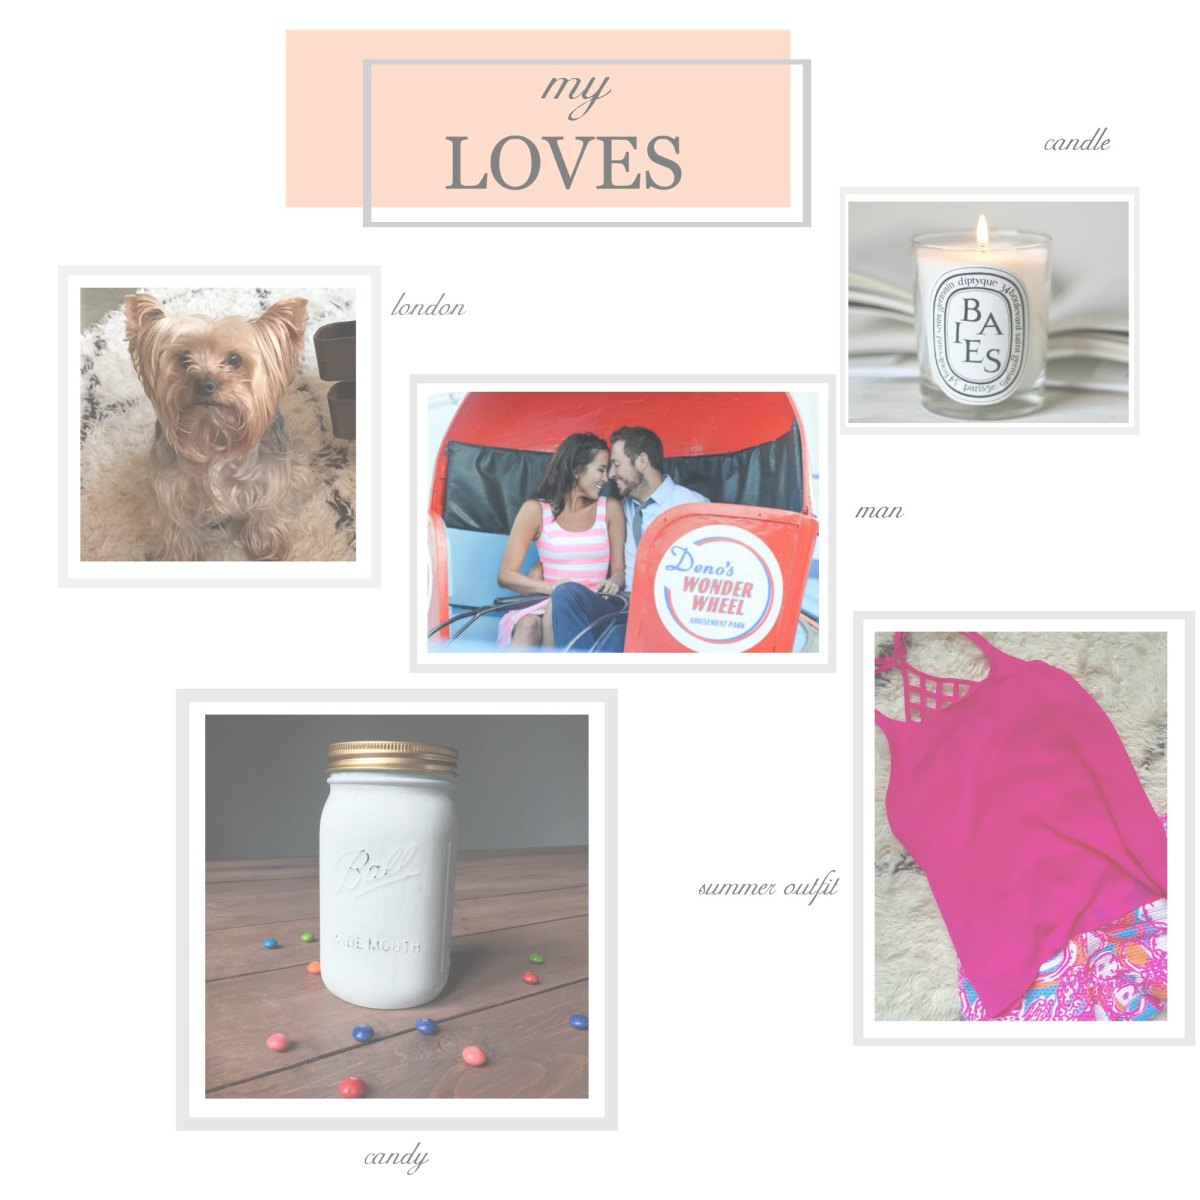 Elizabeth Bixler Designs Favorites and Loves - my yorkie london, my husband, dipitique baies candle, skittles candy, summer outfit lilly pulitzer- these are a few of my favorite things